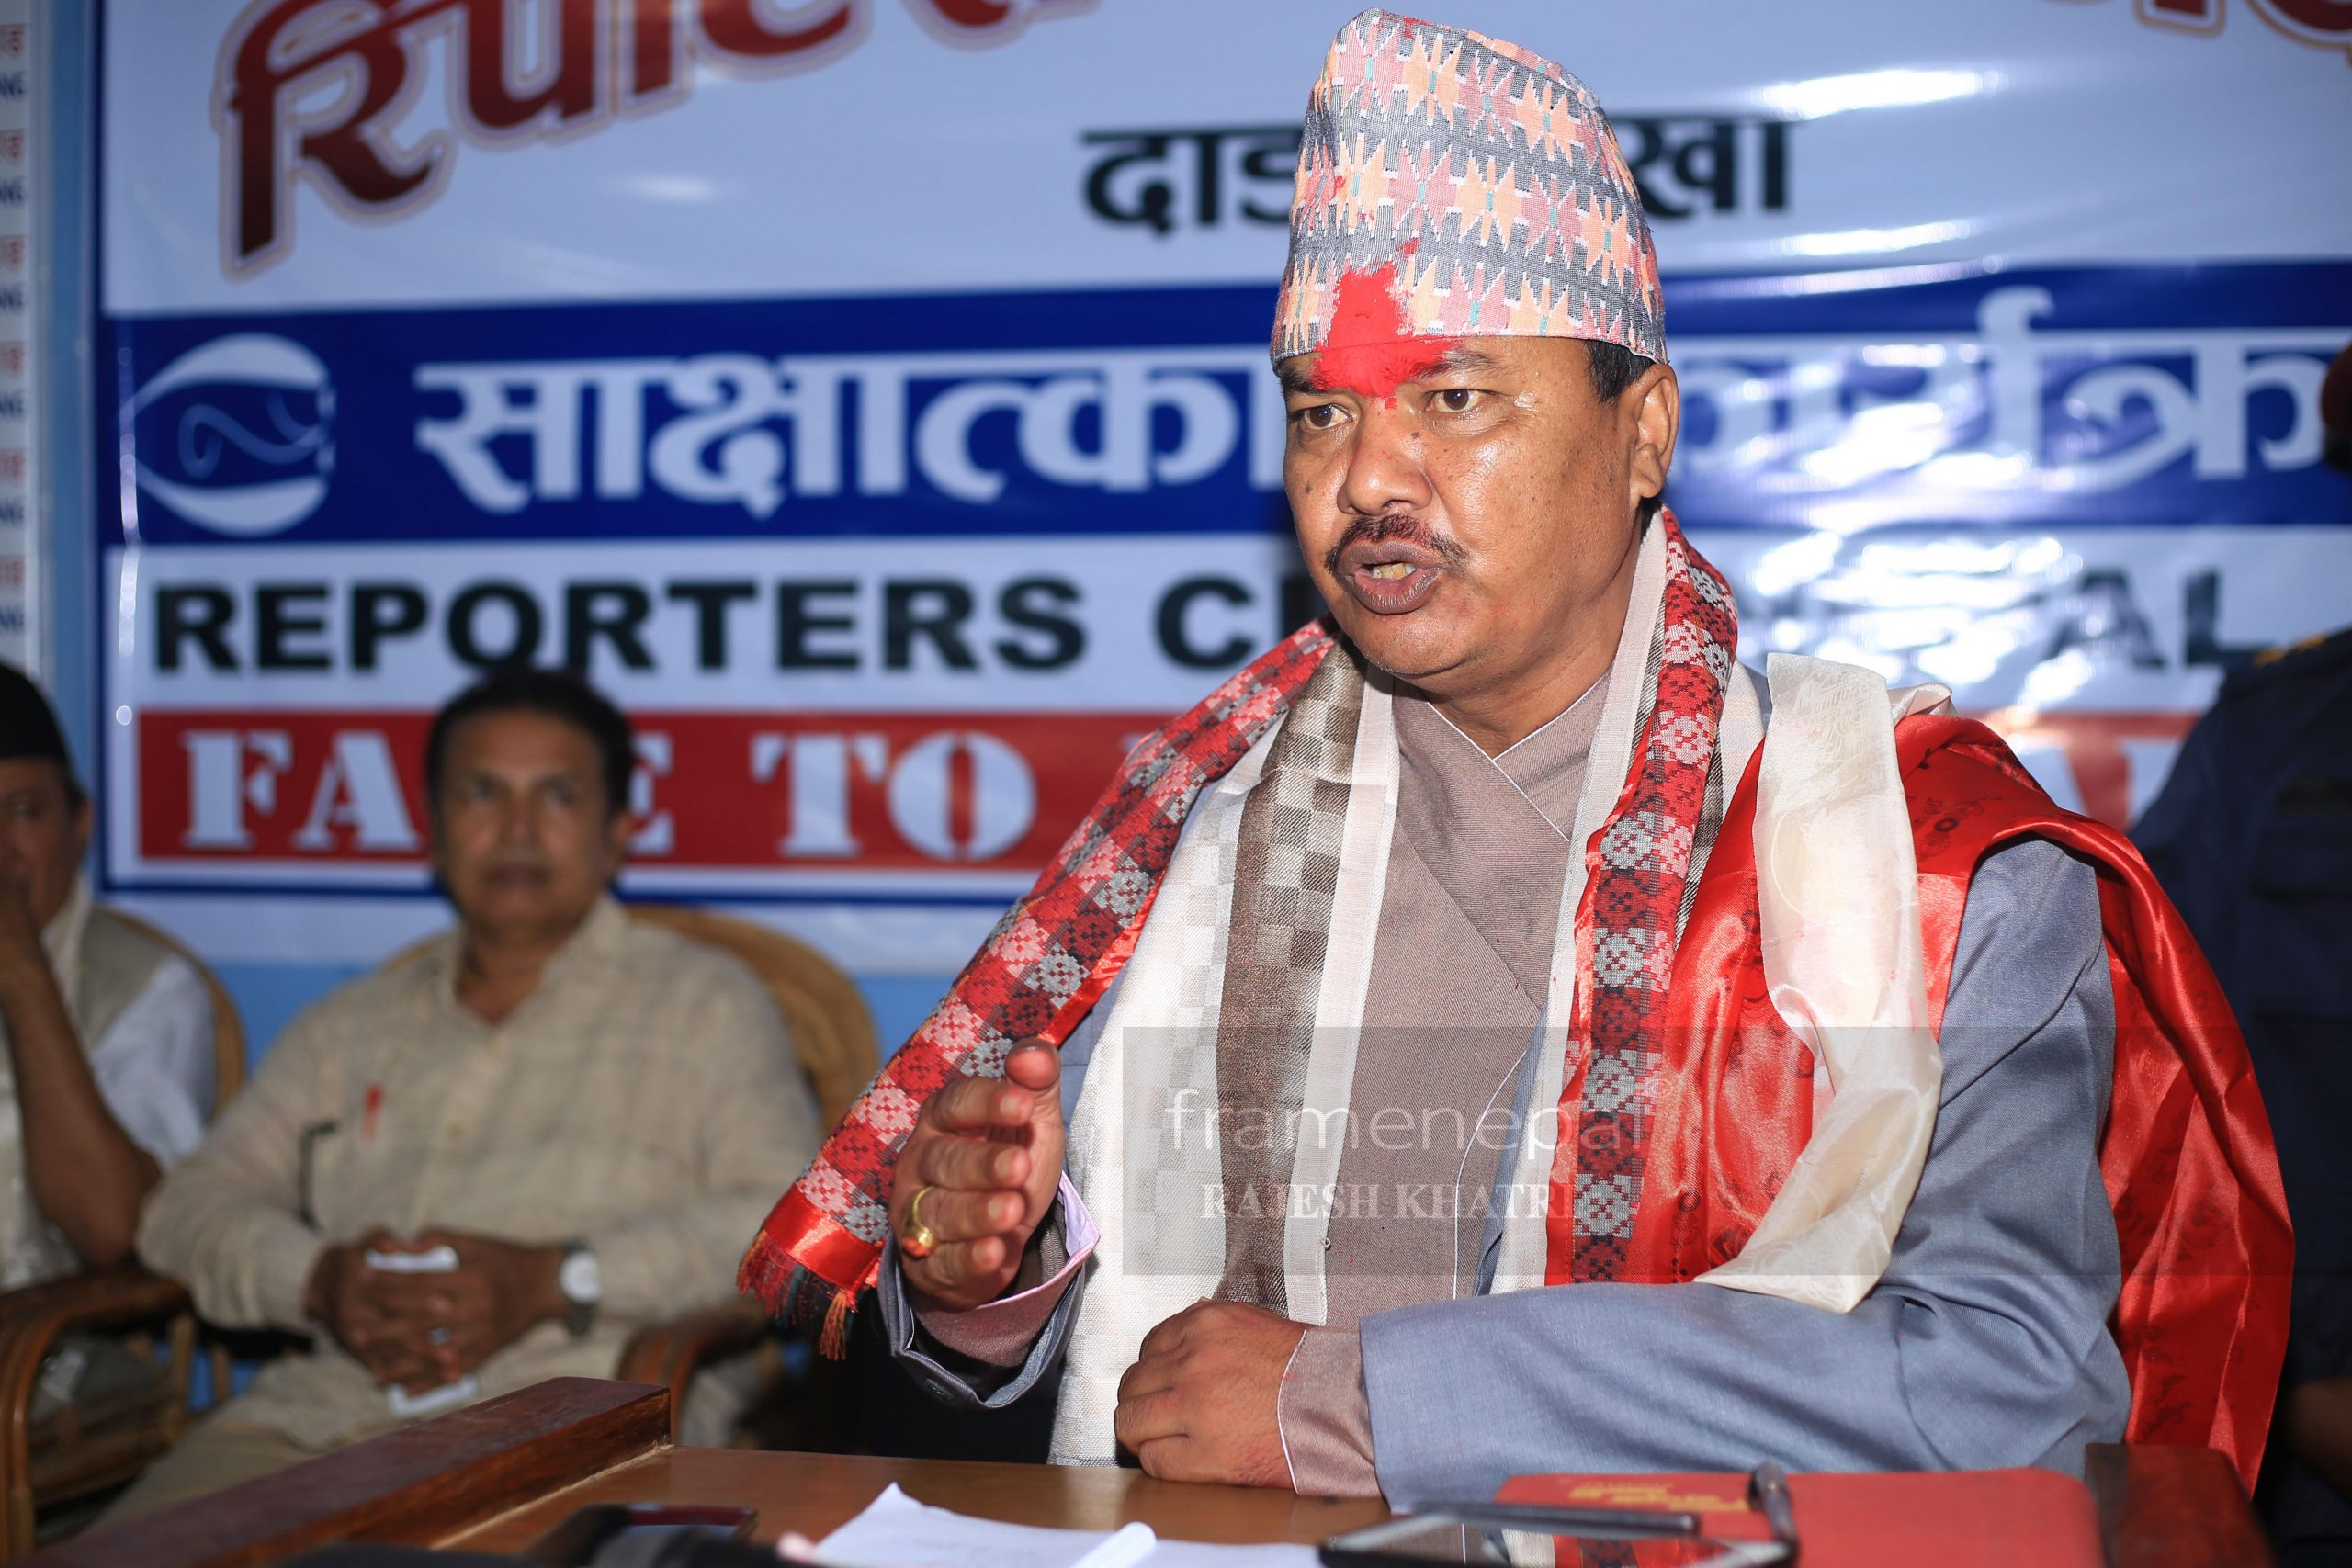 Dilli Bahadur Chaudhary,Best Image for Dilli Chaudhary Backward Society Education Chairperson,Images for Dilli chaudhary,Dilli Bahadur Chaudhary, leader of the Nepali Congress,Province 5 Public Accounts Committee Chairman Dilli Bahadur Chaudhary, Dilli Bahadur Chaudhary